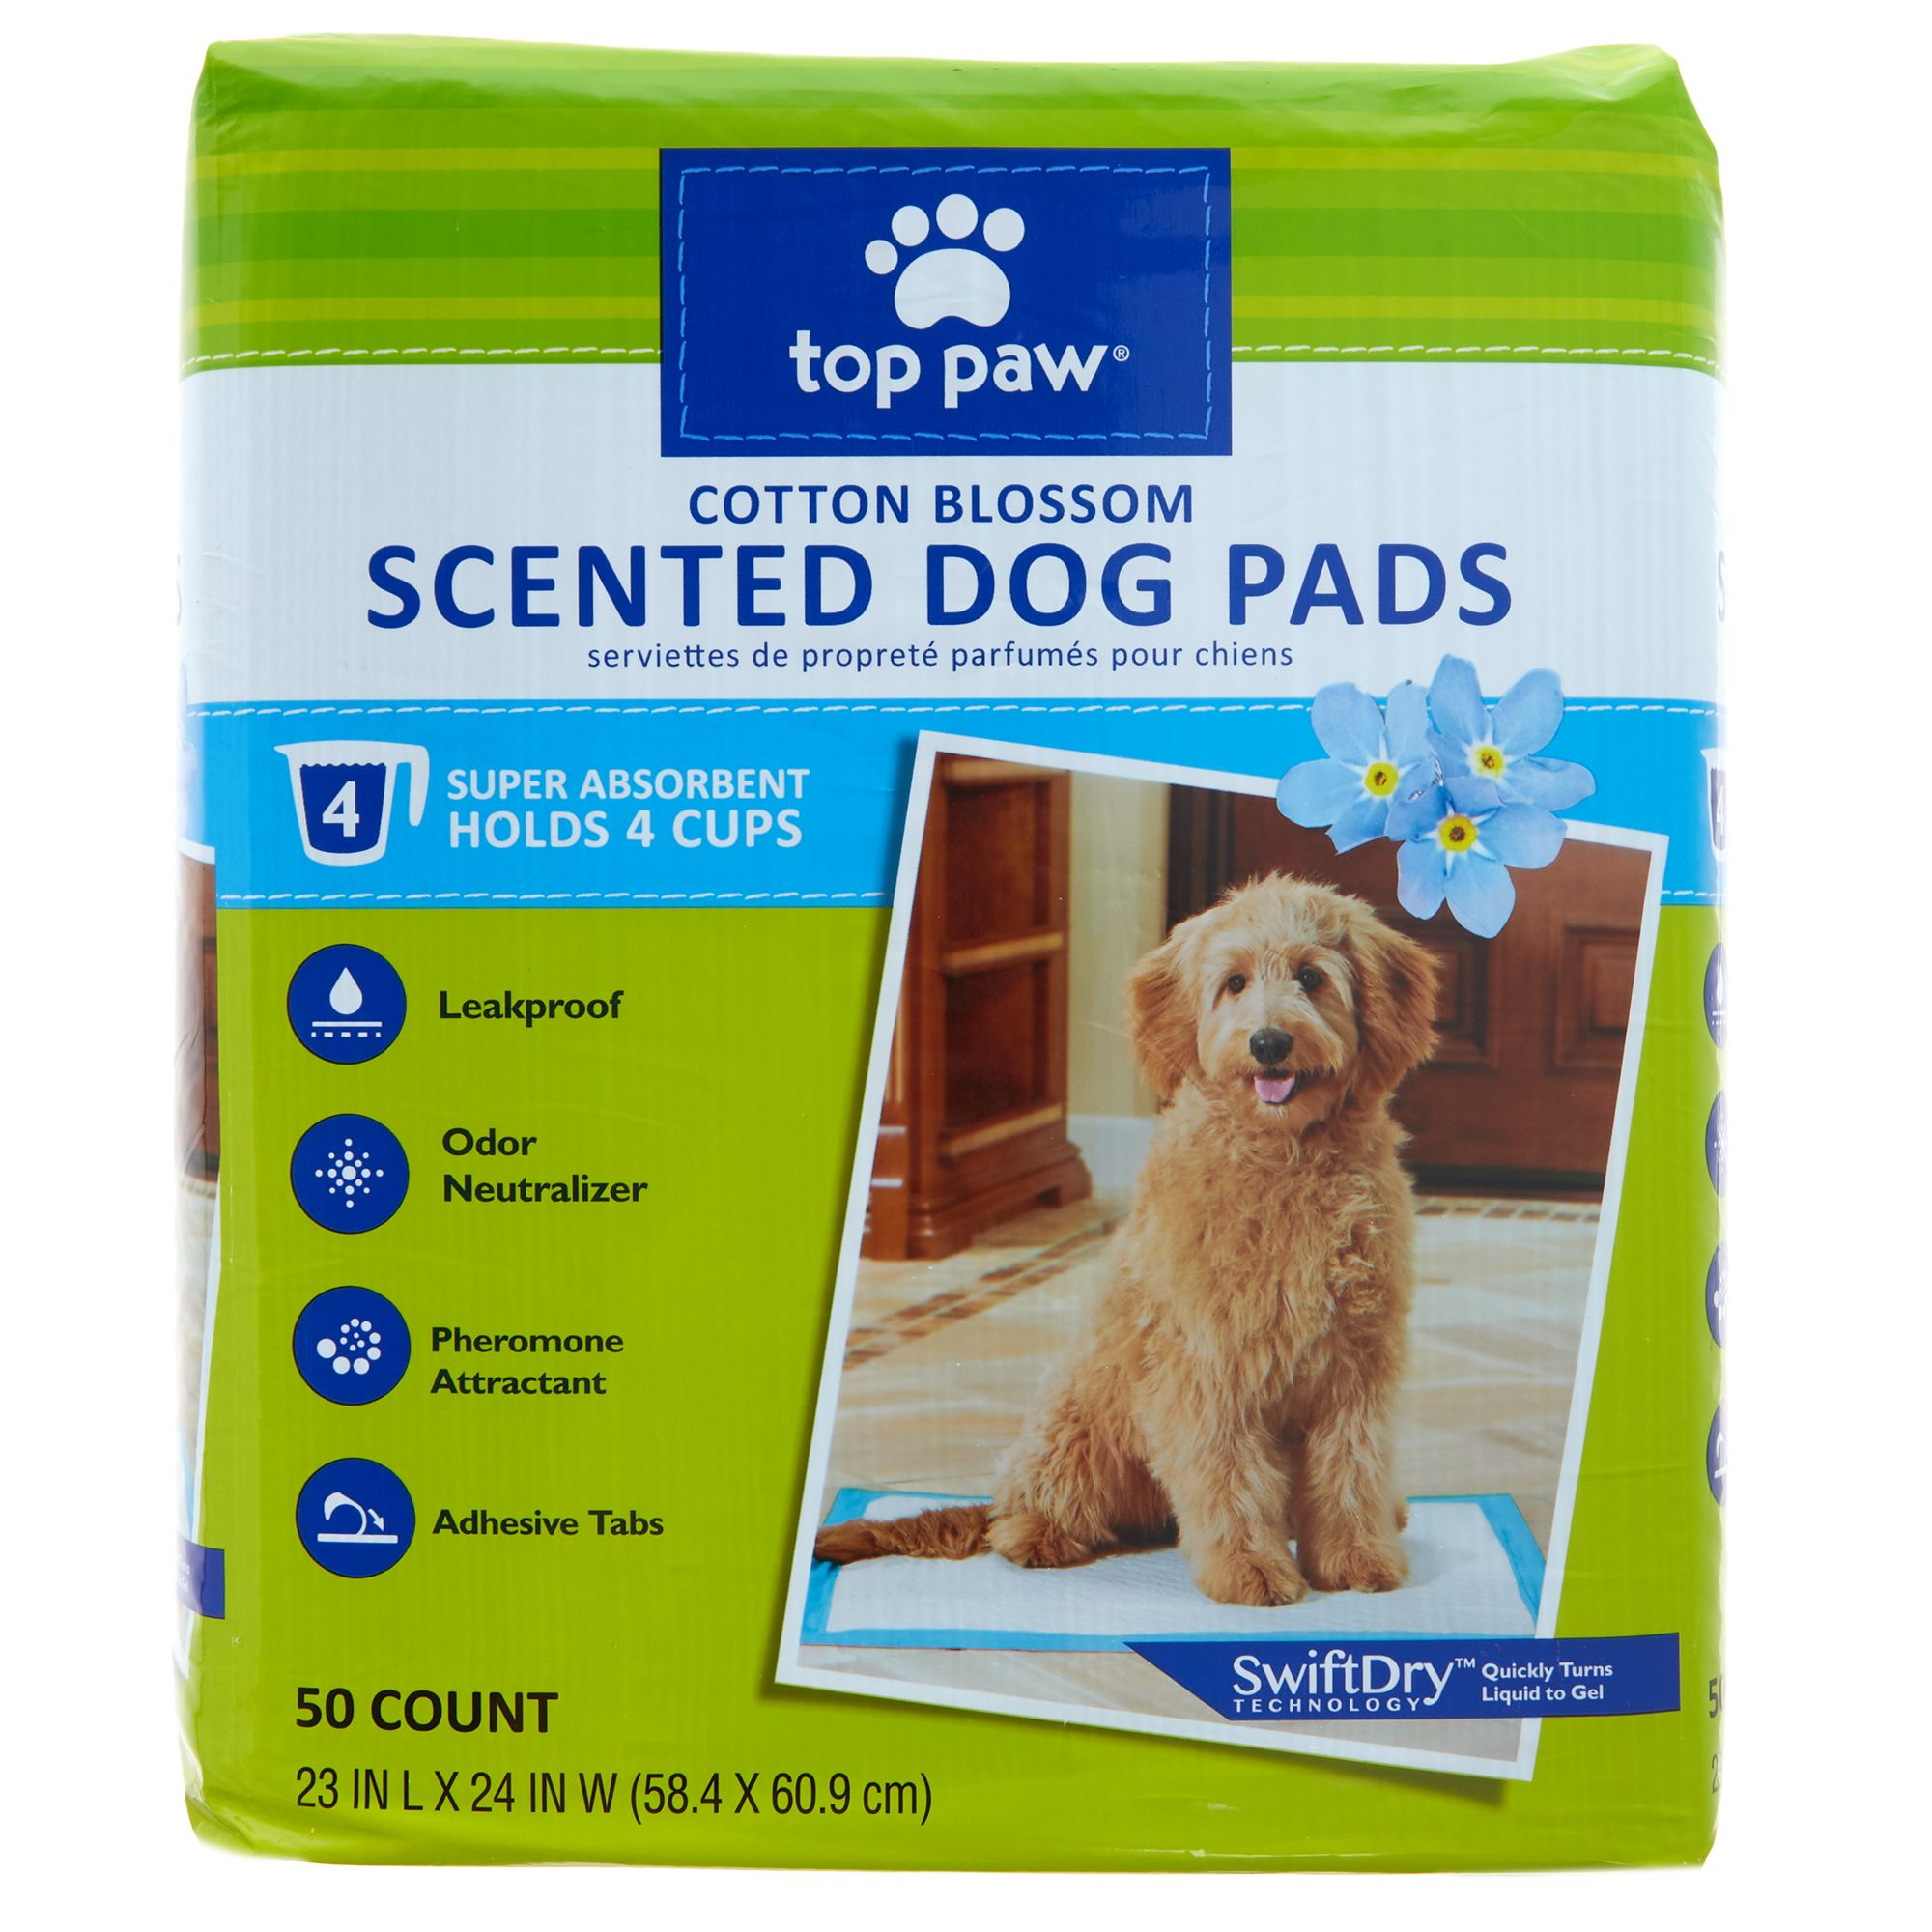 Top Paw Scented Dog Pads size: 50 Count 5270602